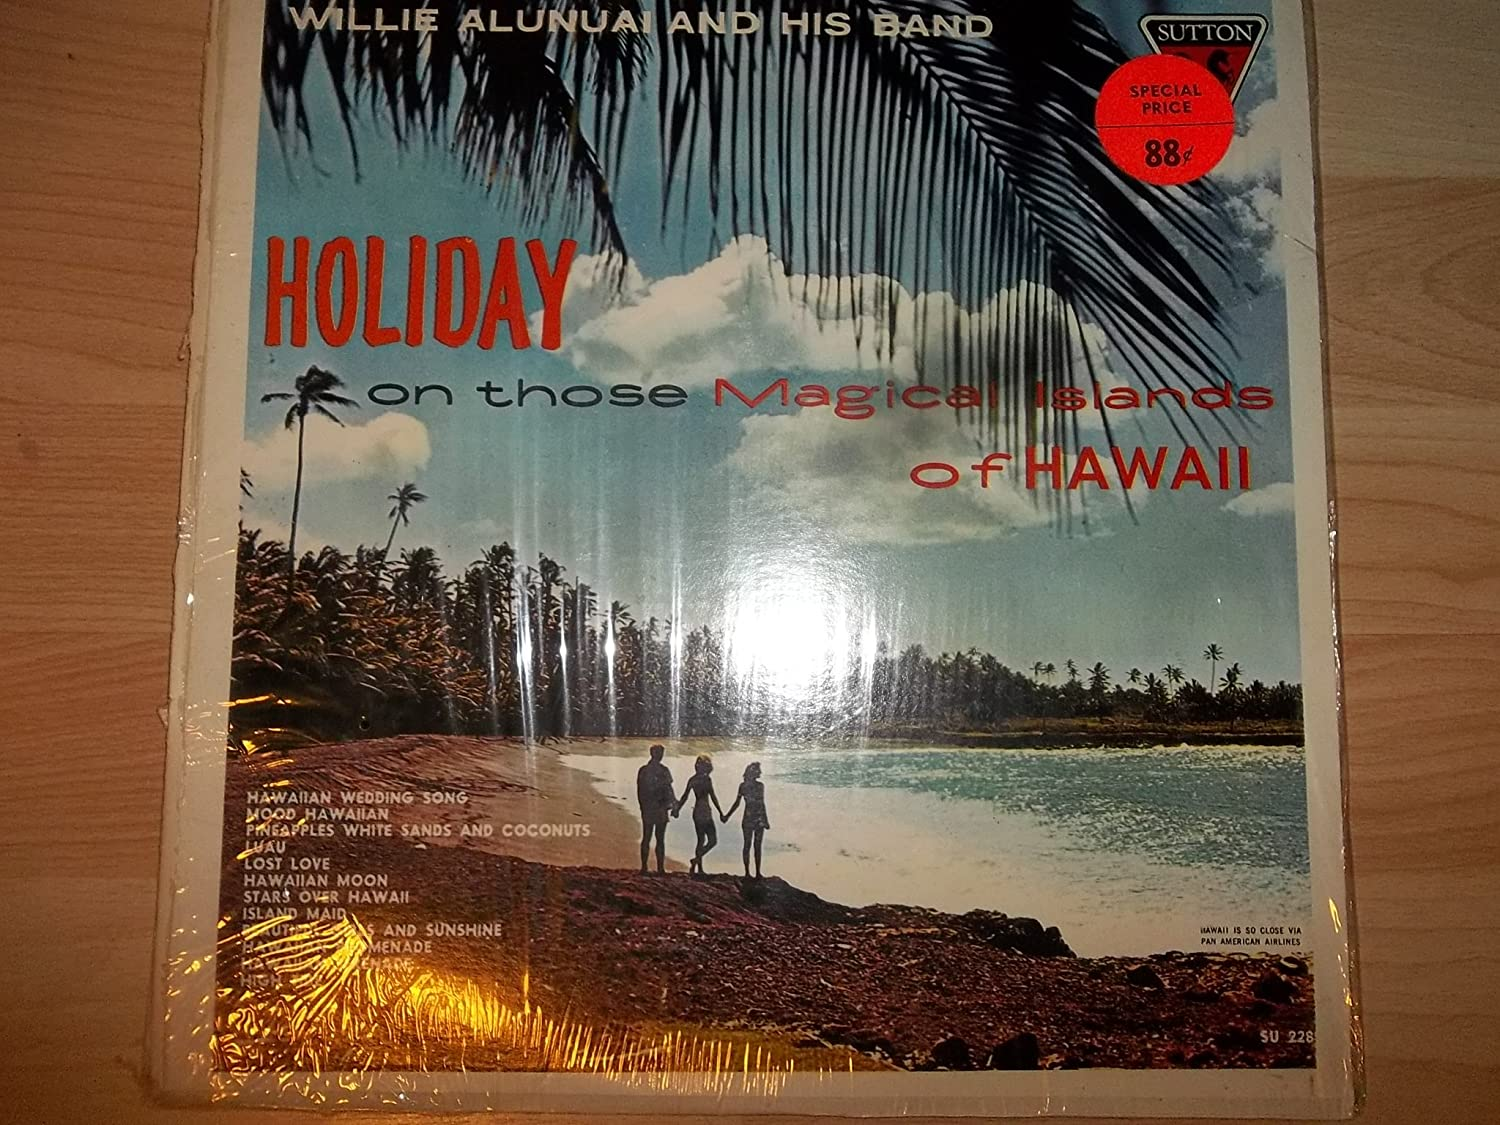 Recommendation Willie Alunuai and his Band Arlington Mall - Magical o on Islands Those Holiday